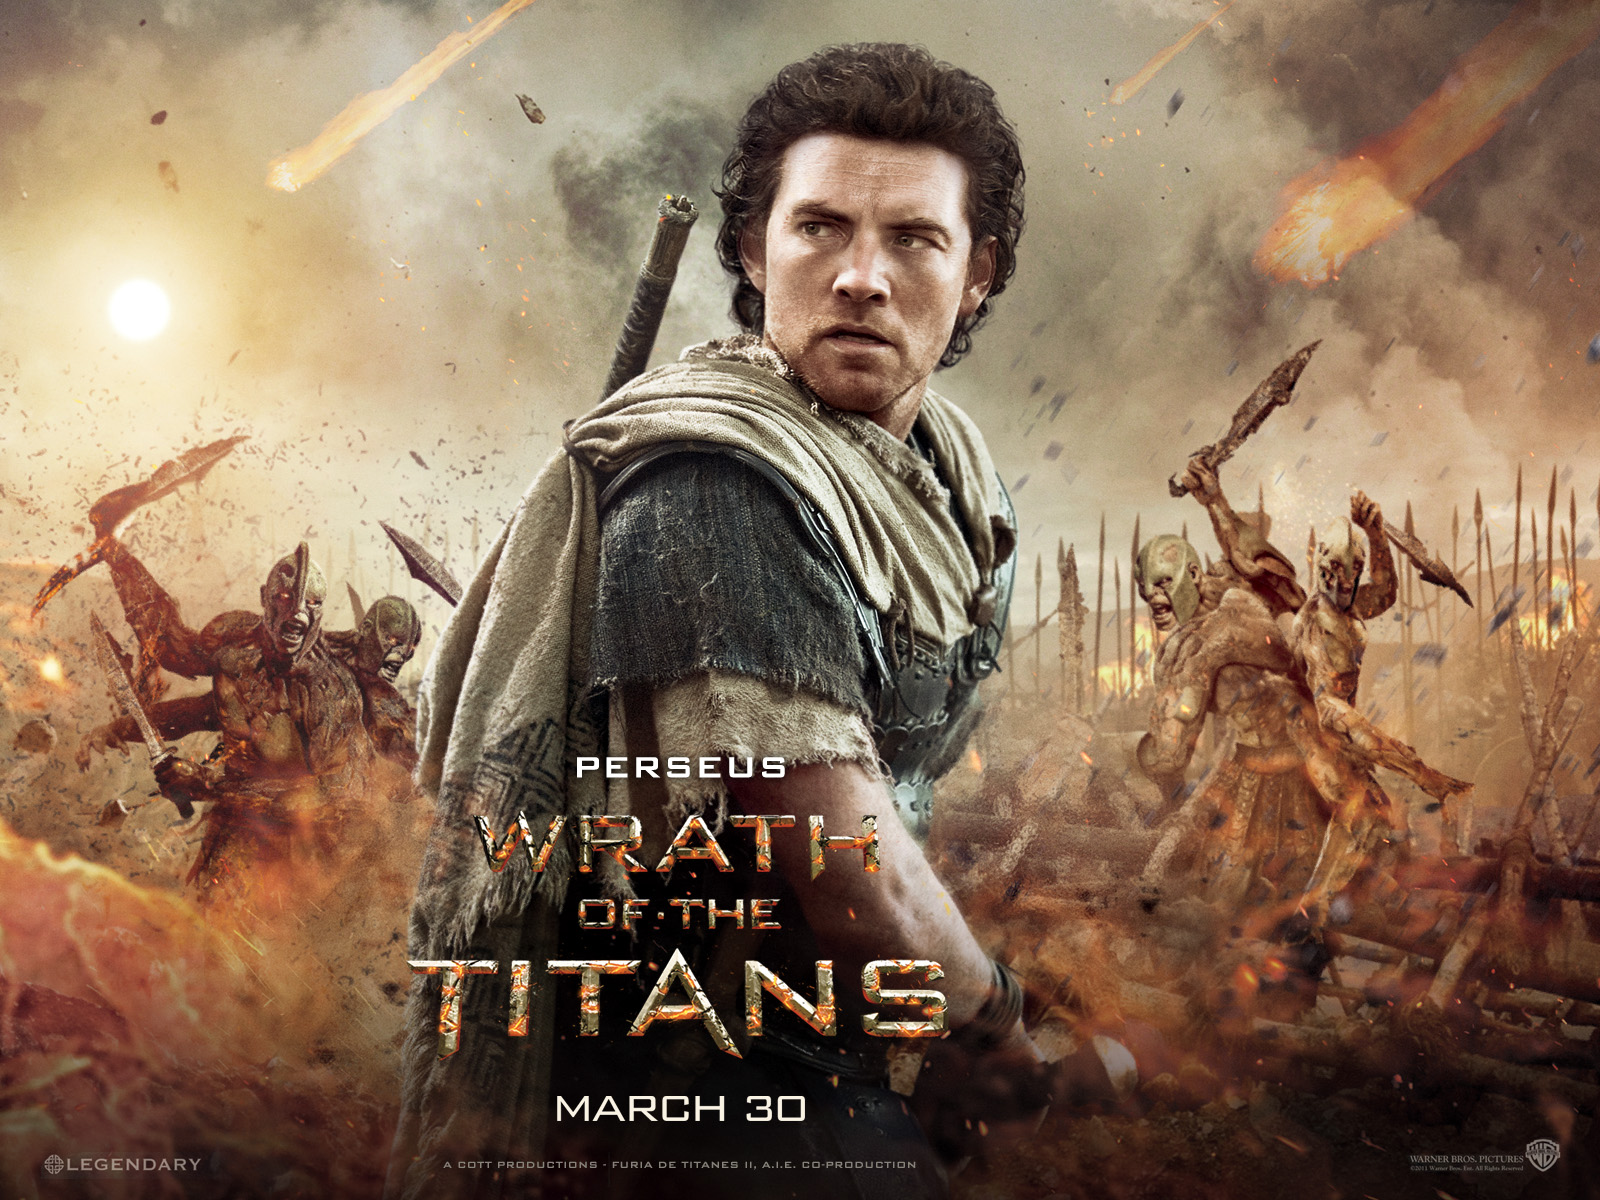 http://2.bp.blogspot.com/-c7xl6rxXy0A/T31JrsMdmMI/AAAAAAAABac/OW69lqaeqj4/s1600/Sam_Worthington_in_Wrath_of_the_Titans_Wallpaper_5_1024.jpg